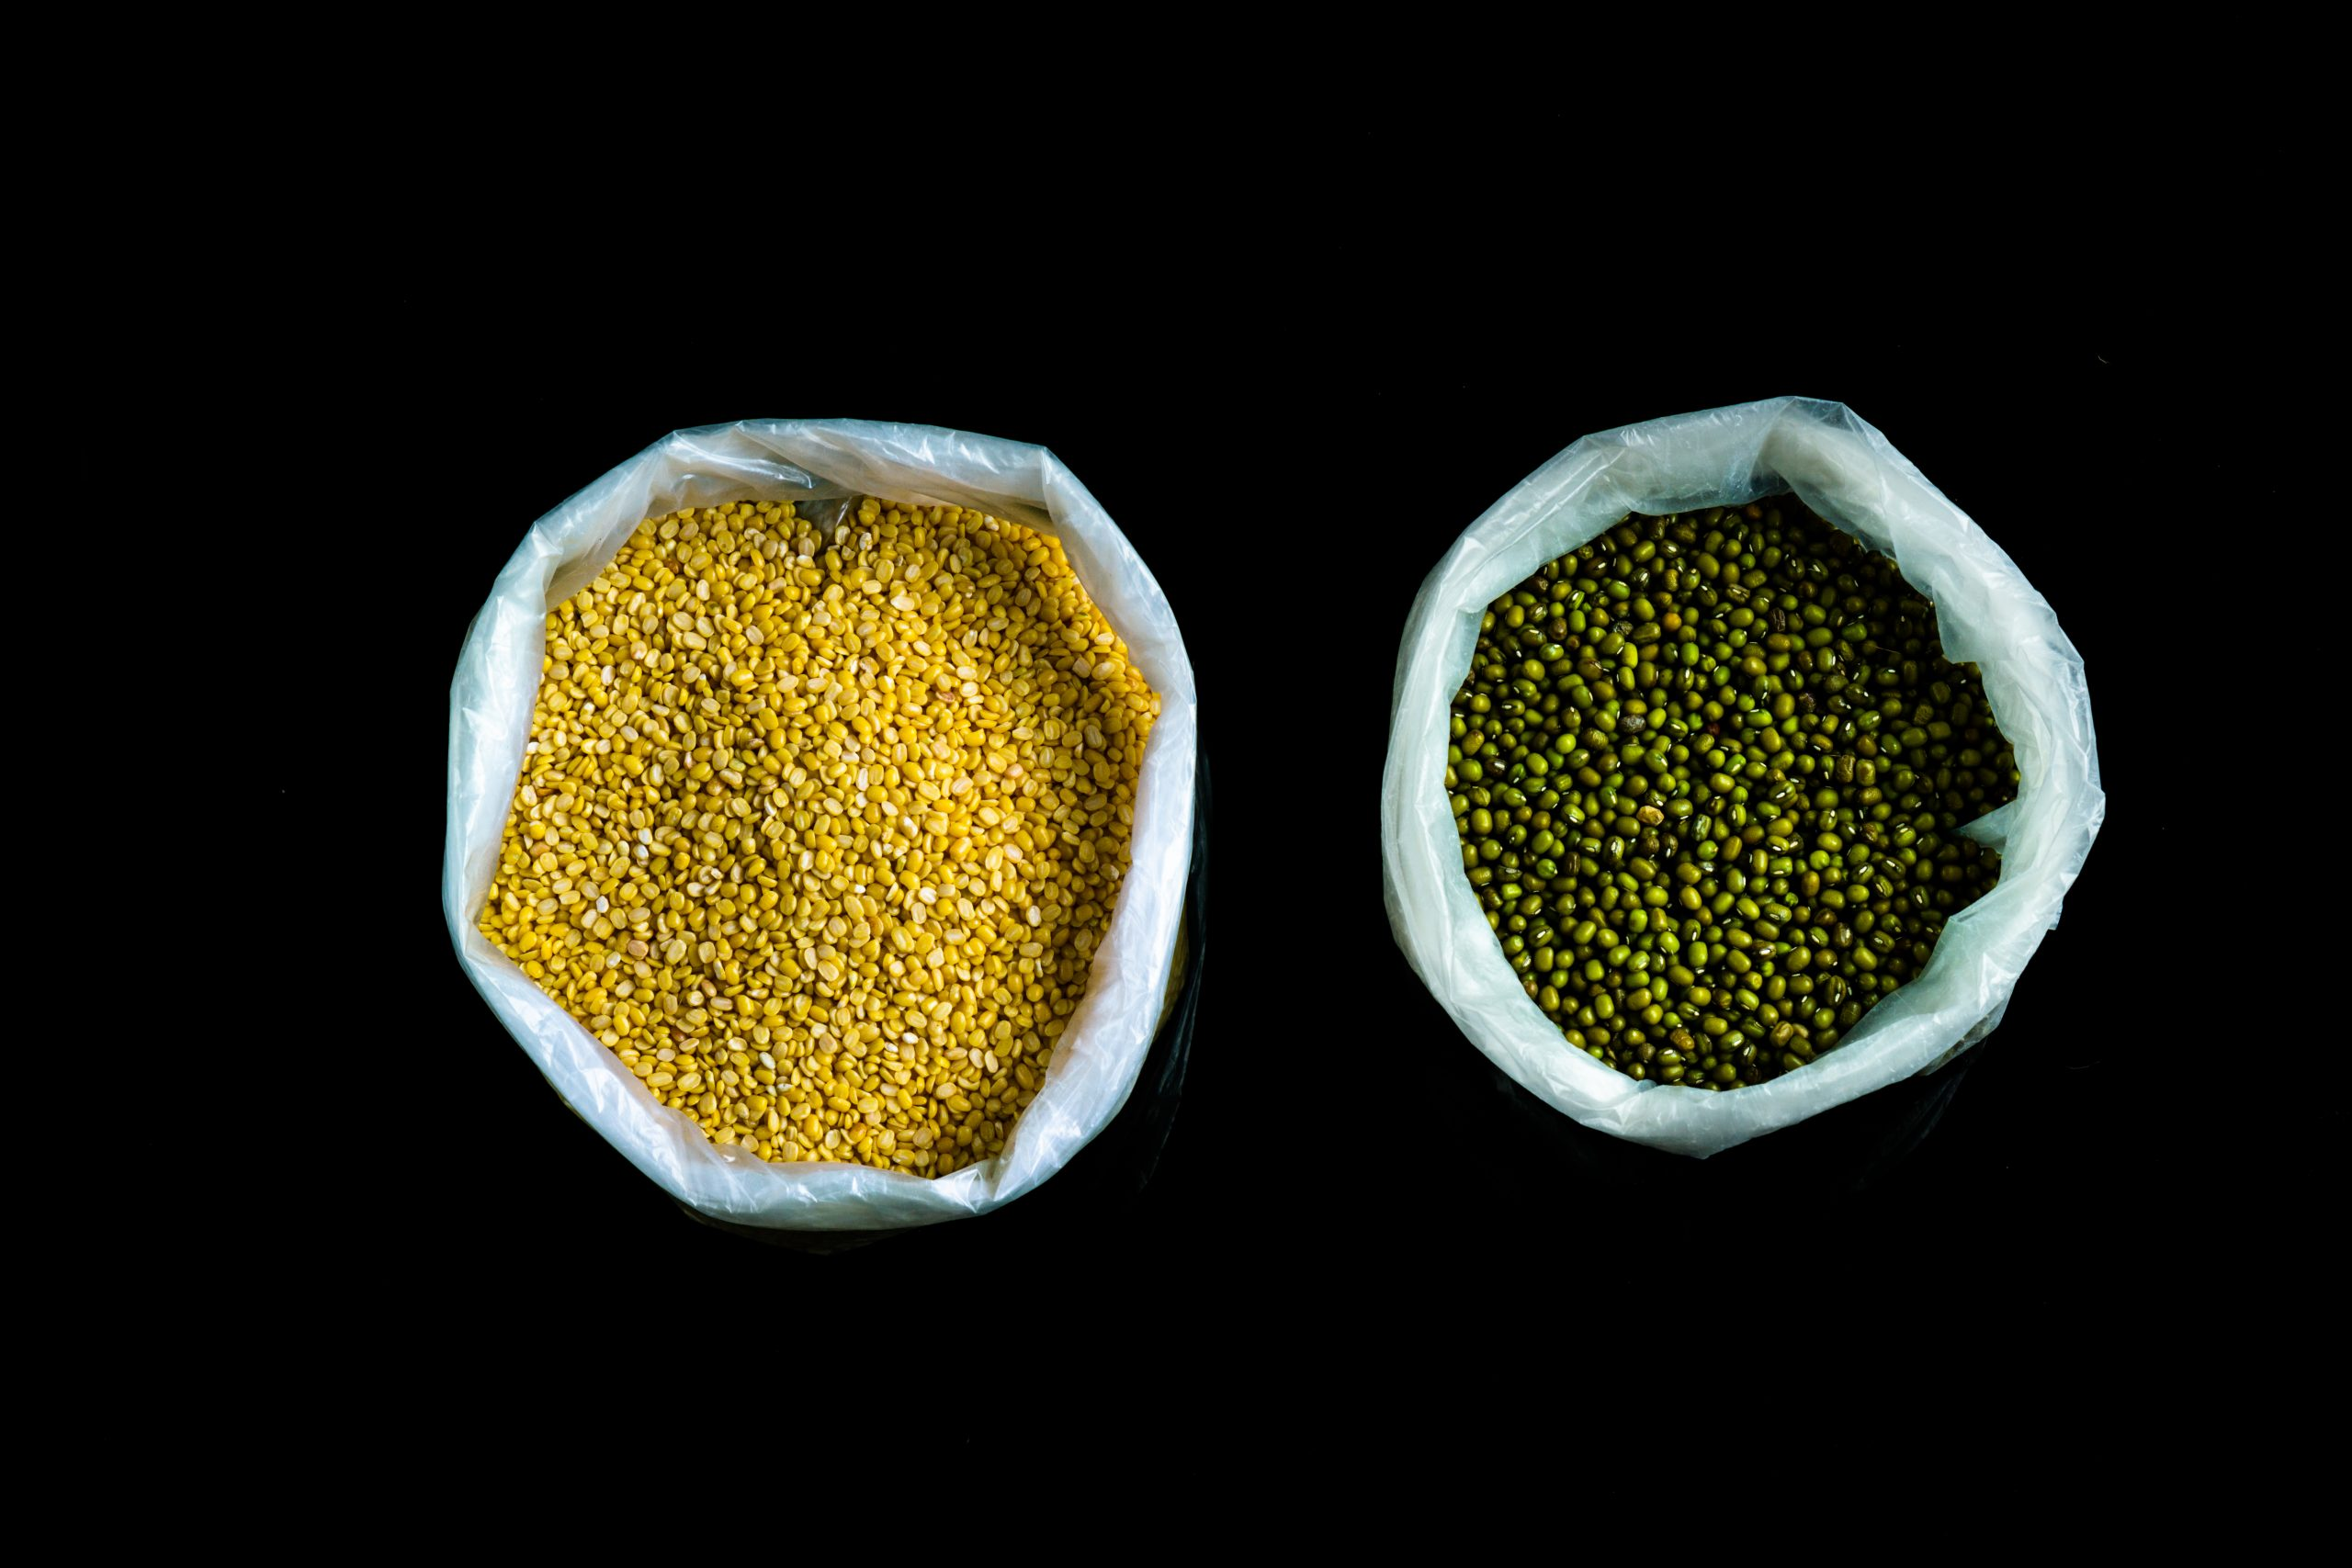 pulses in a bag